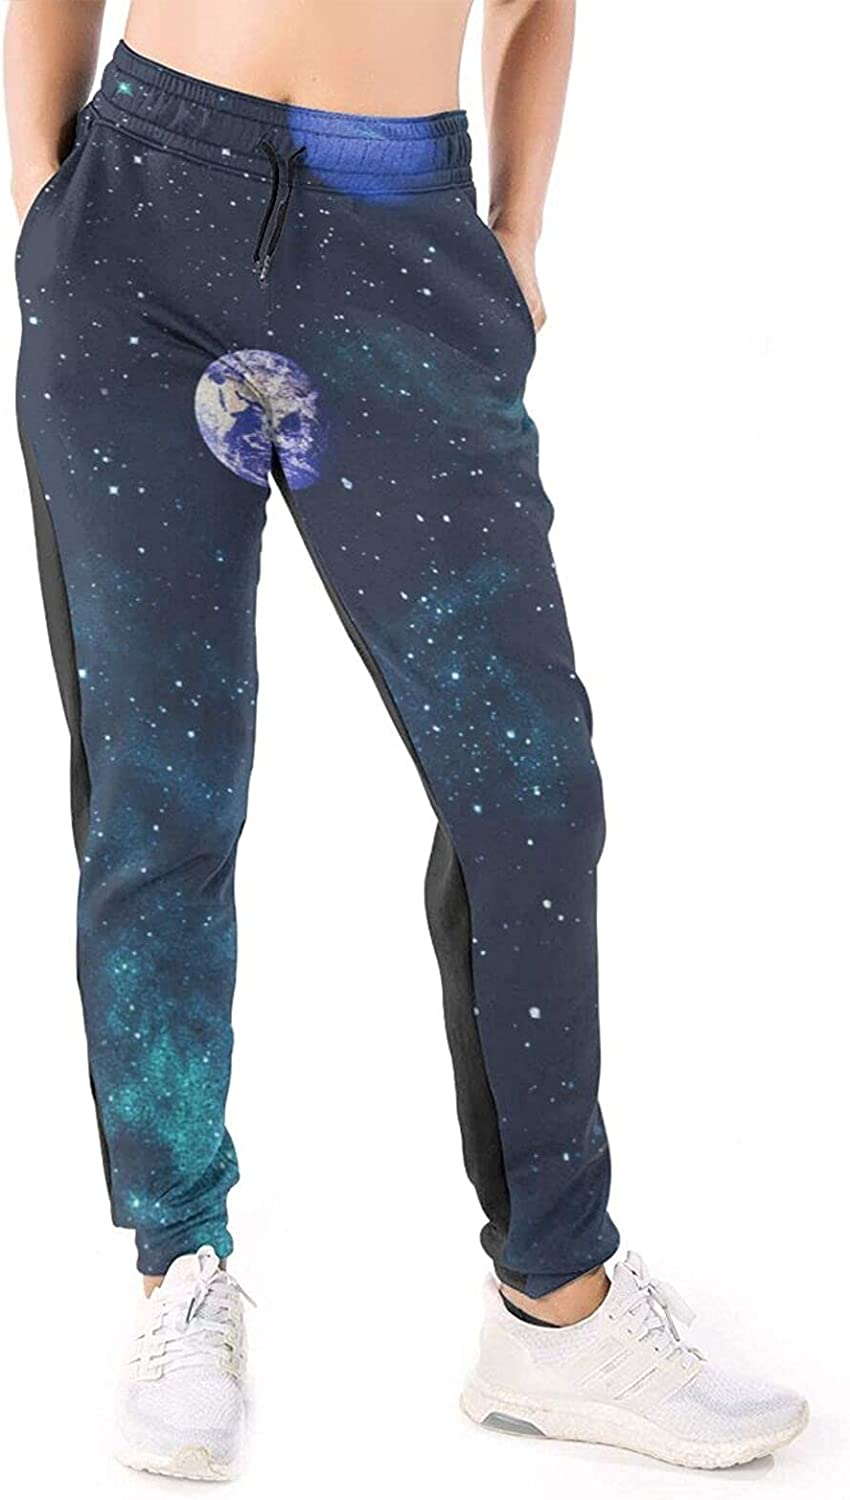 Women Joggers Pants Space Galaxy Cosmos Athletic Sweatpants with Pockets Casual Trousers Baggy